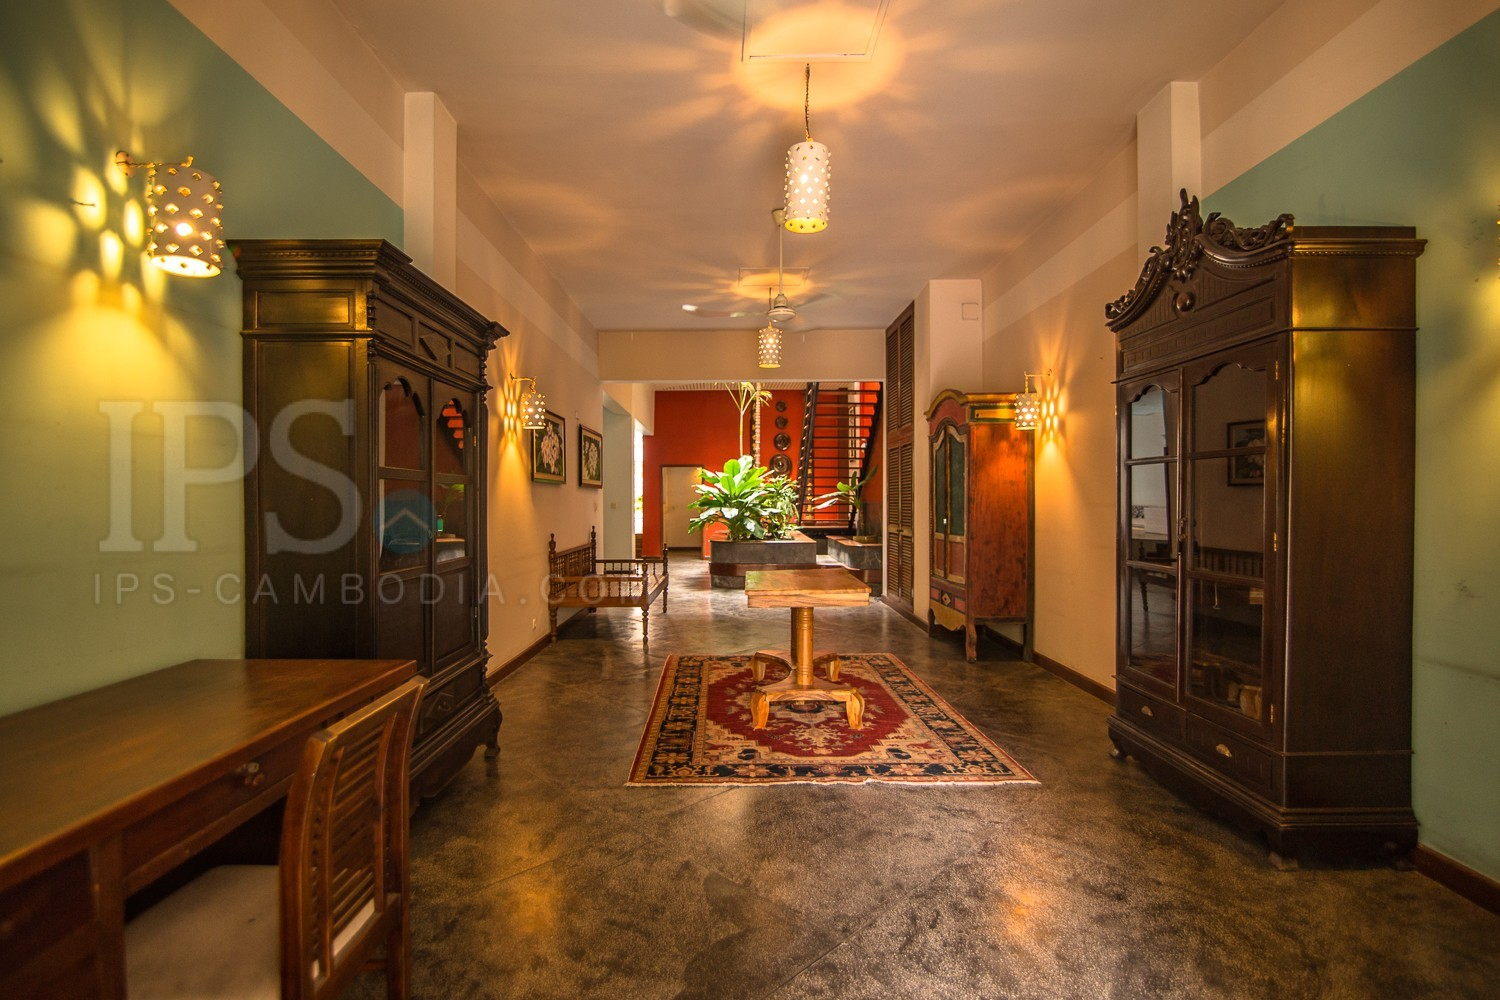 6 Bedroom Townhouse For Rent - Daun Penh, Phnom Penh